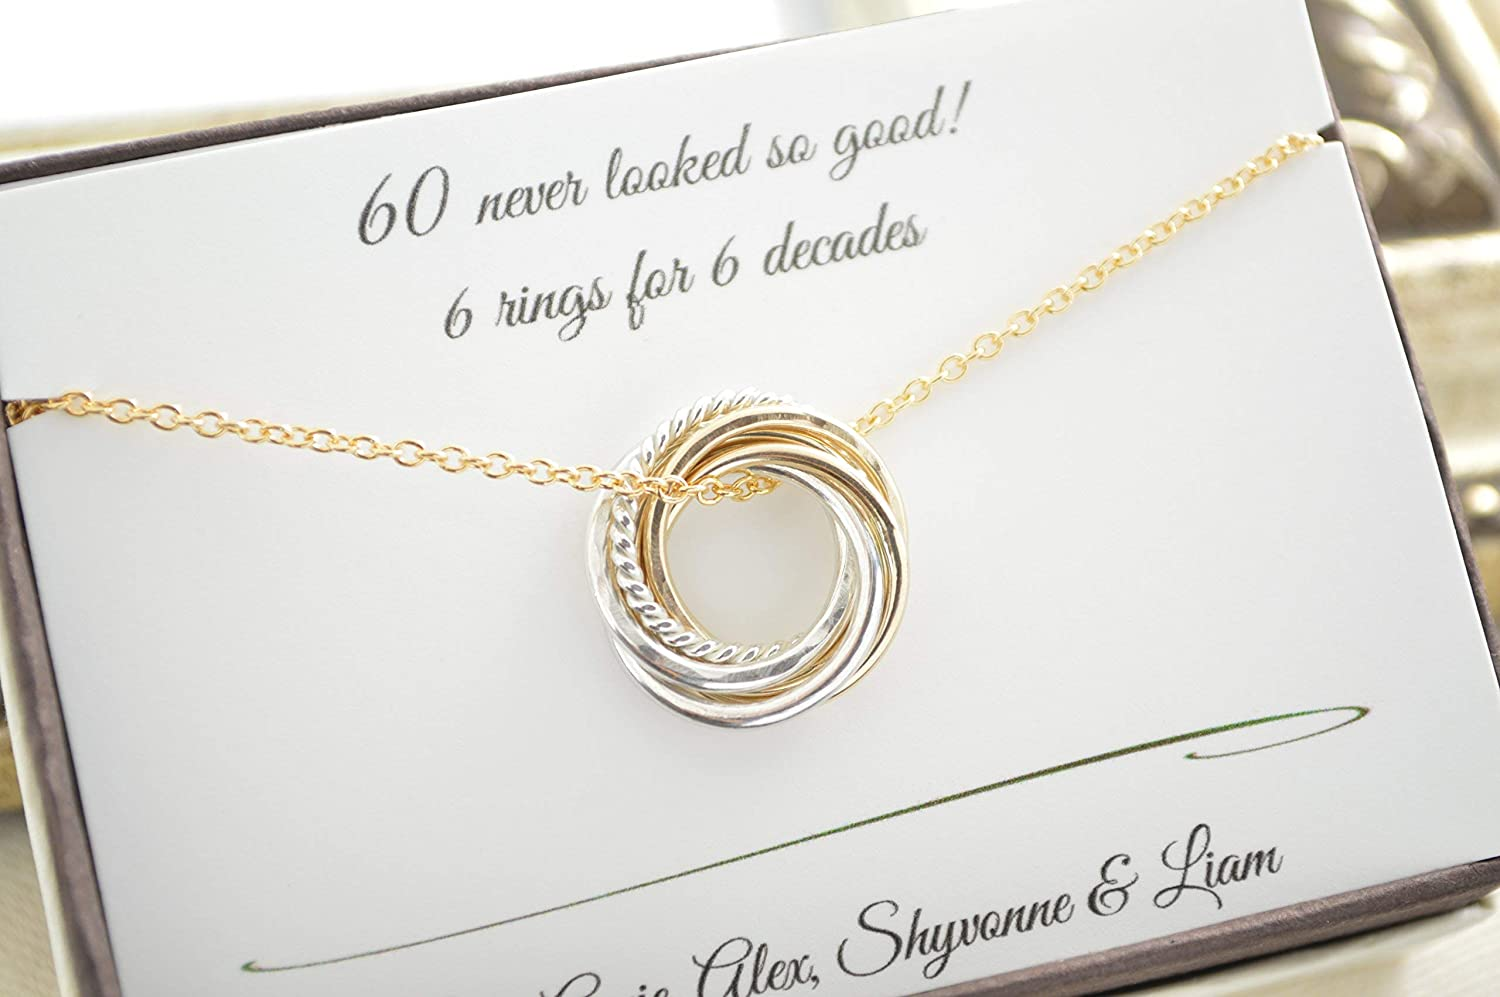 Amazon 60th Birthday Gift For Mom 6 Mixed Metals Rings 6th Anniversary Petite Necklace Gold Women Handmade